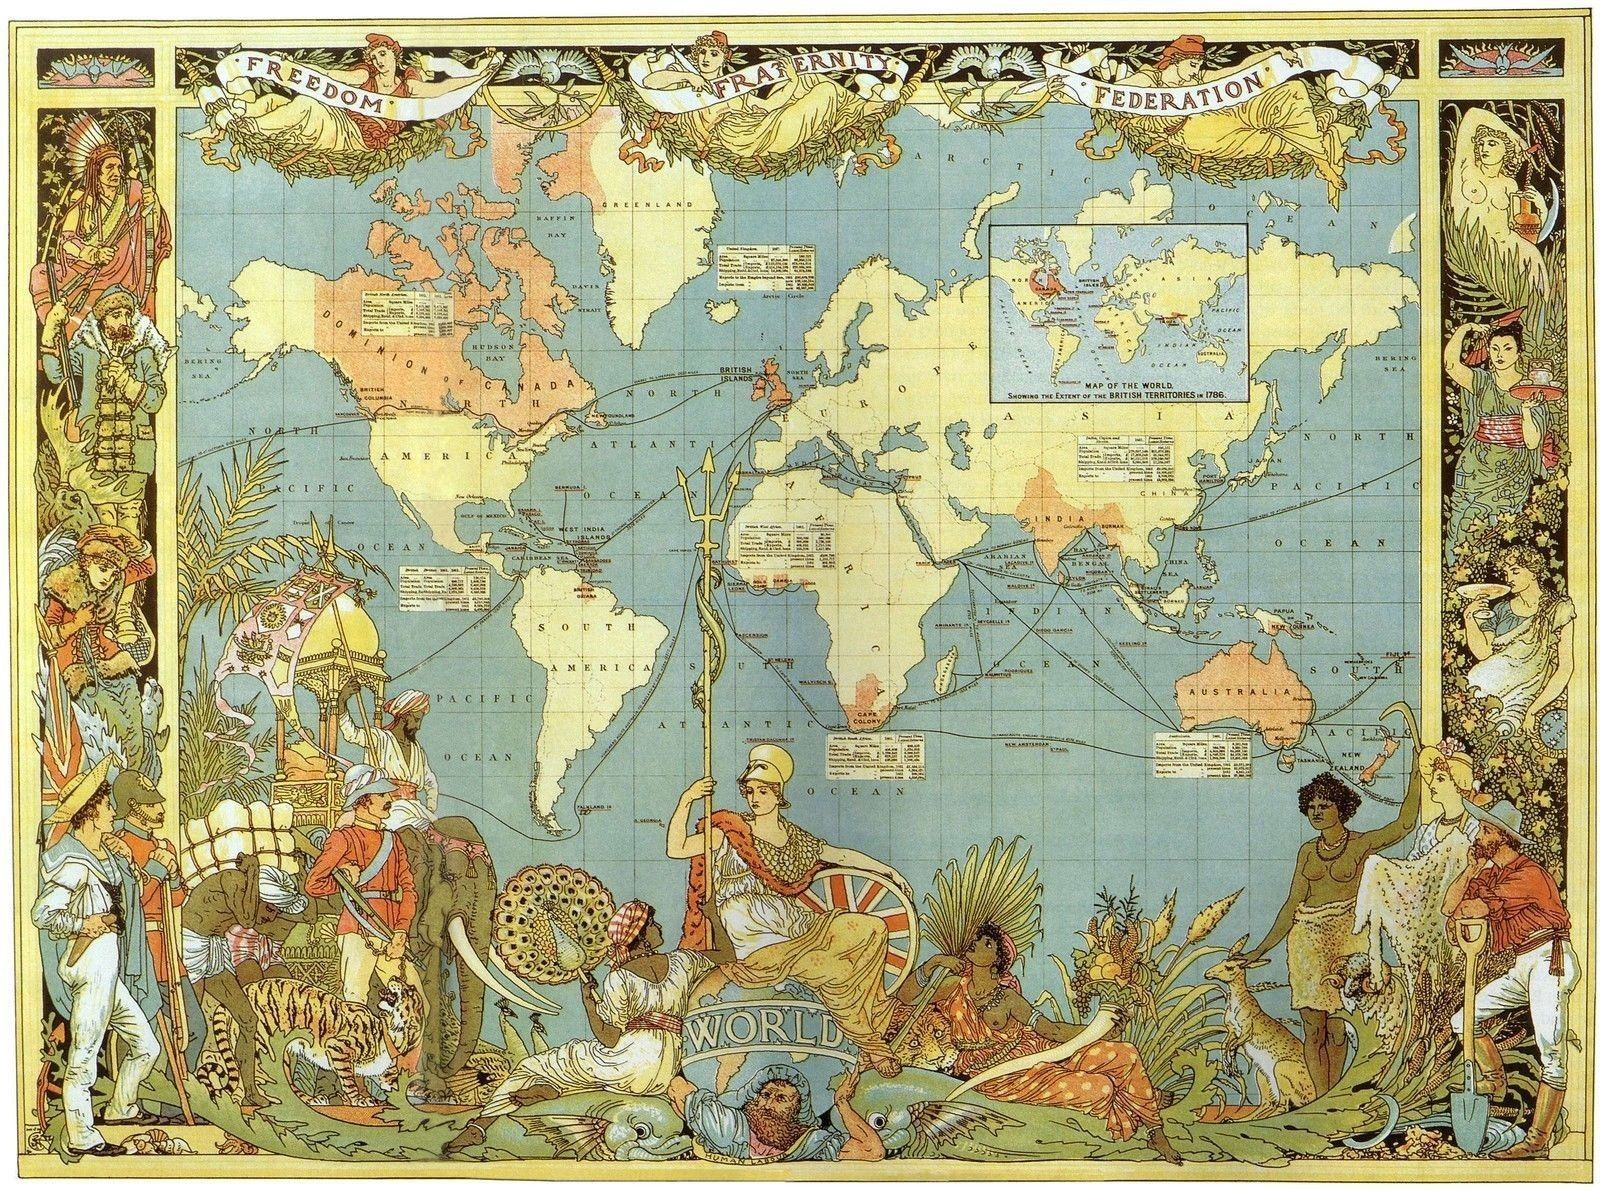 Vintage Style Map Of The World Victorian British Empire - World map to print a4